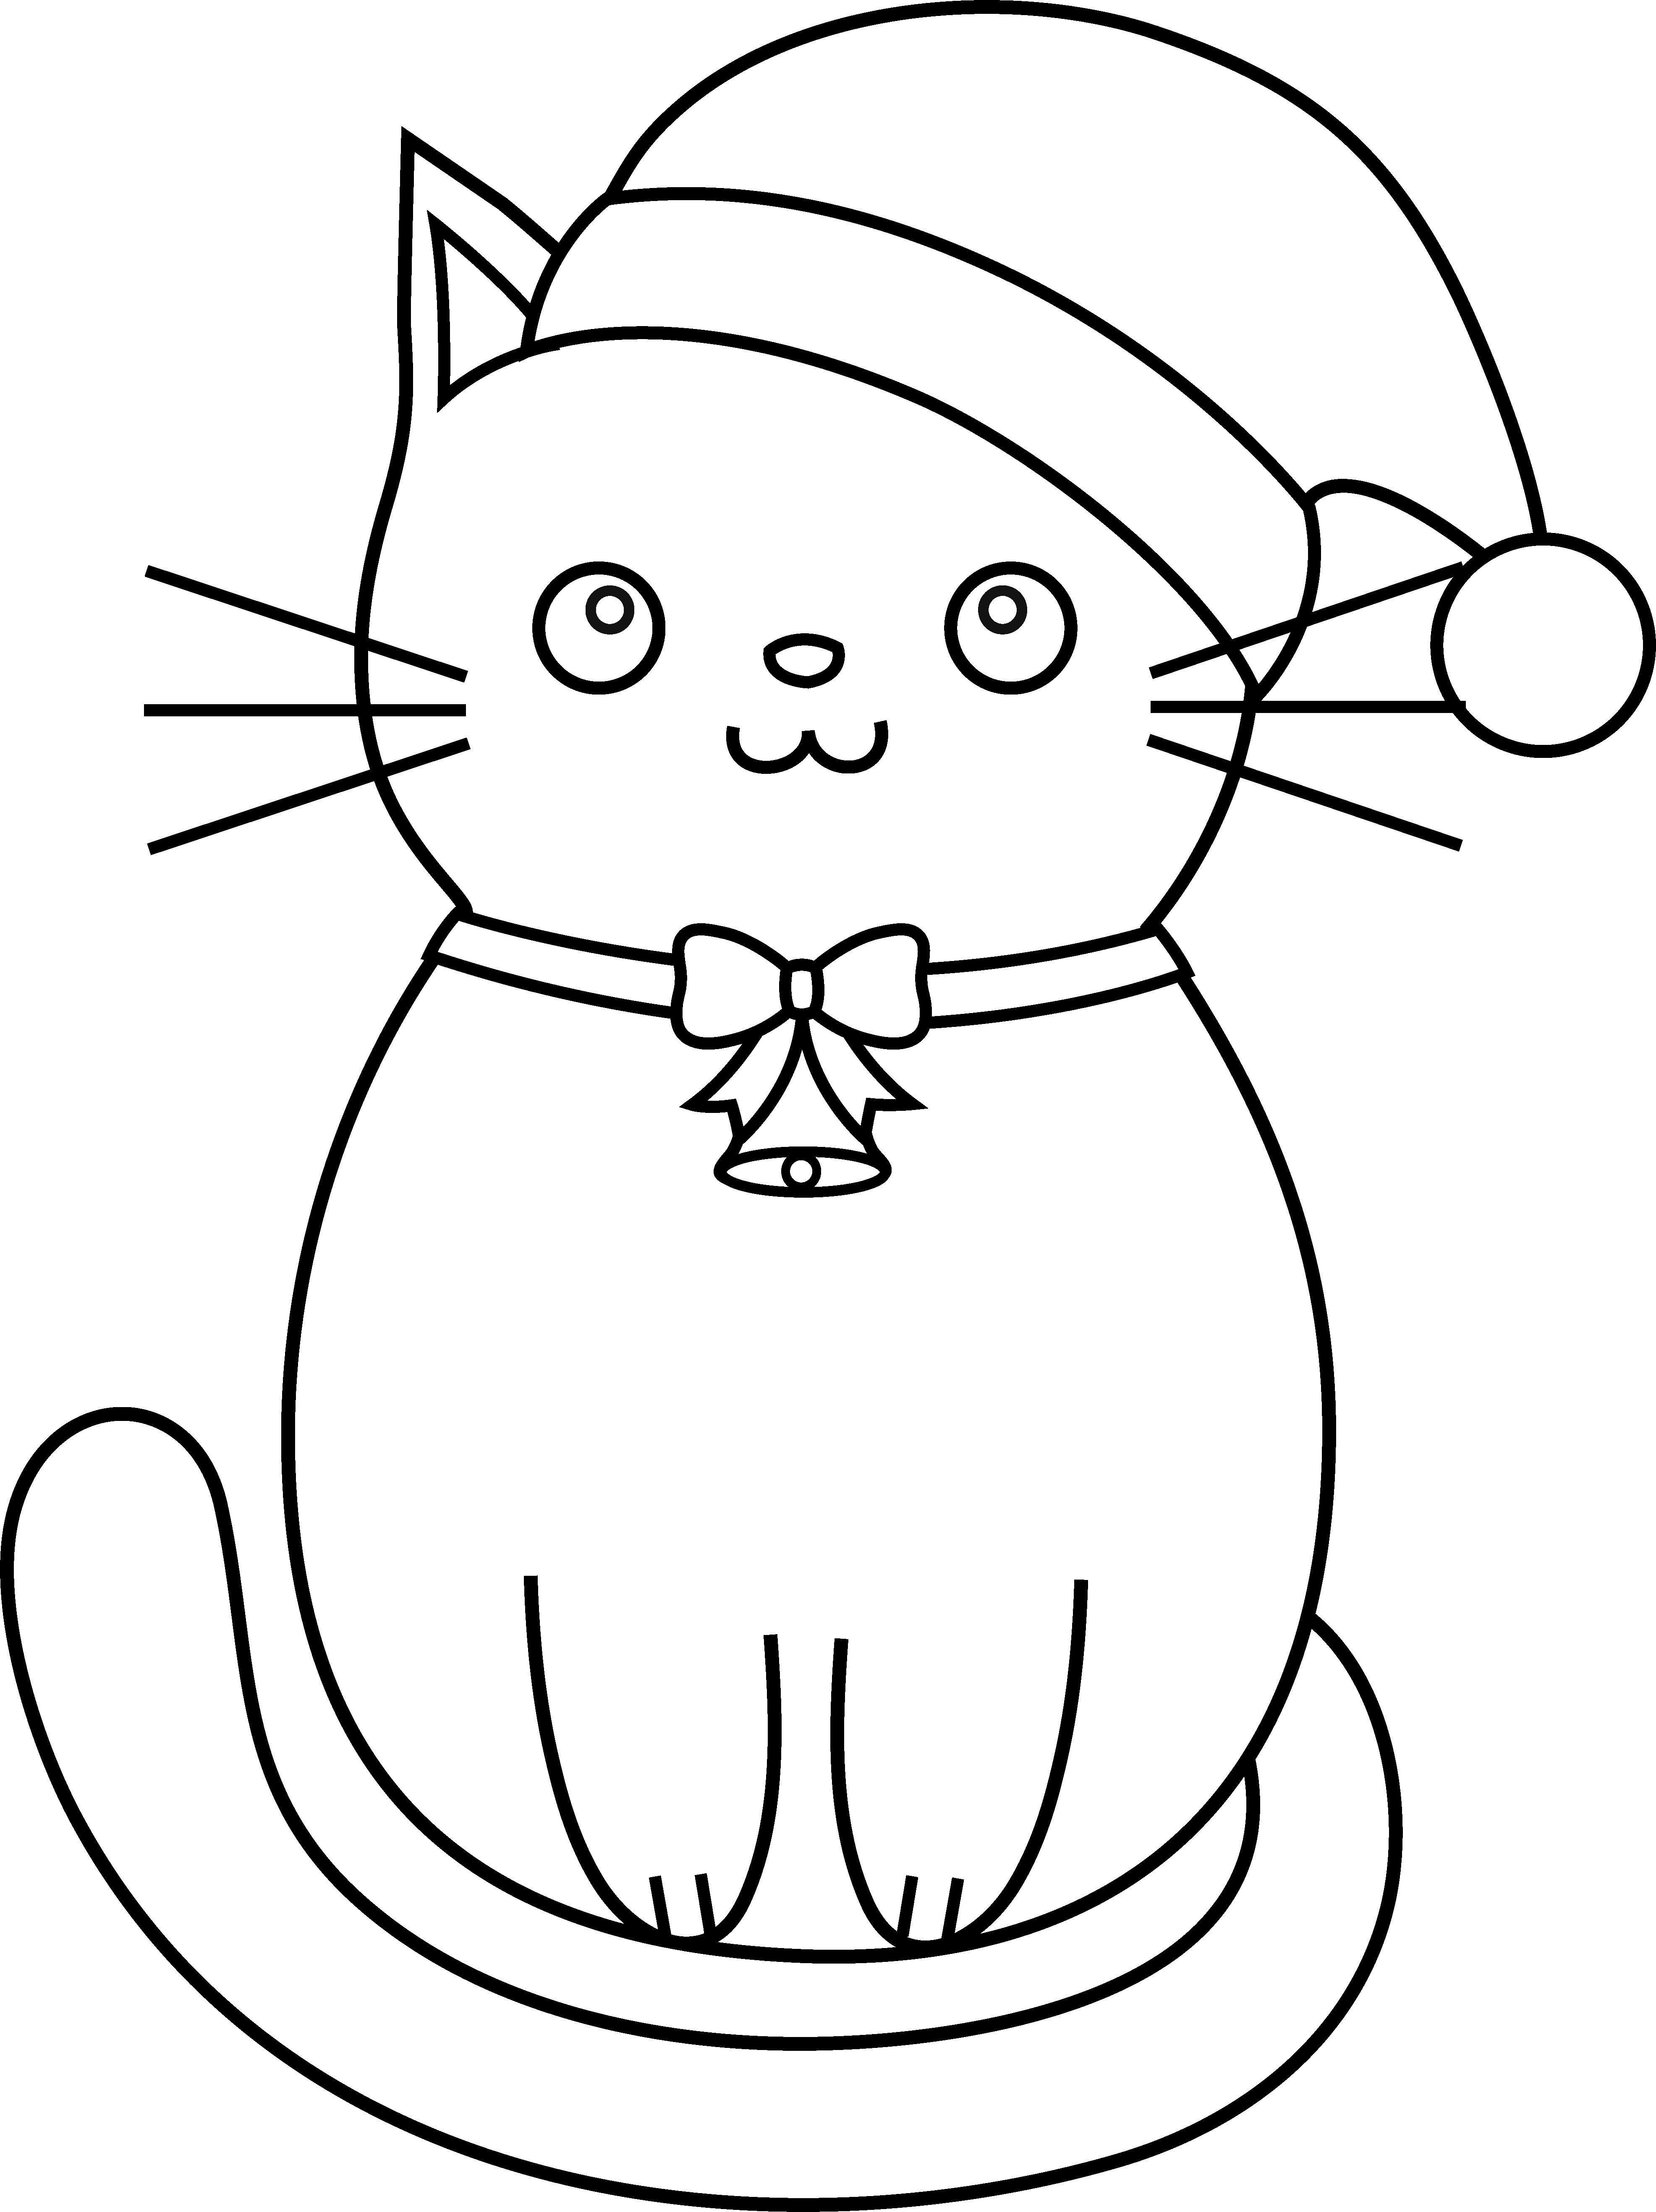 kitten coloring kitten coloring pages best coloring pages for kids coloring kitten